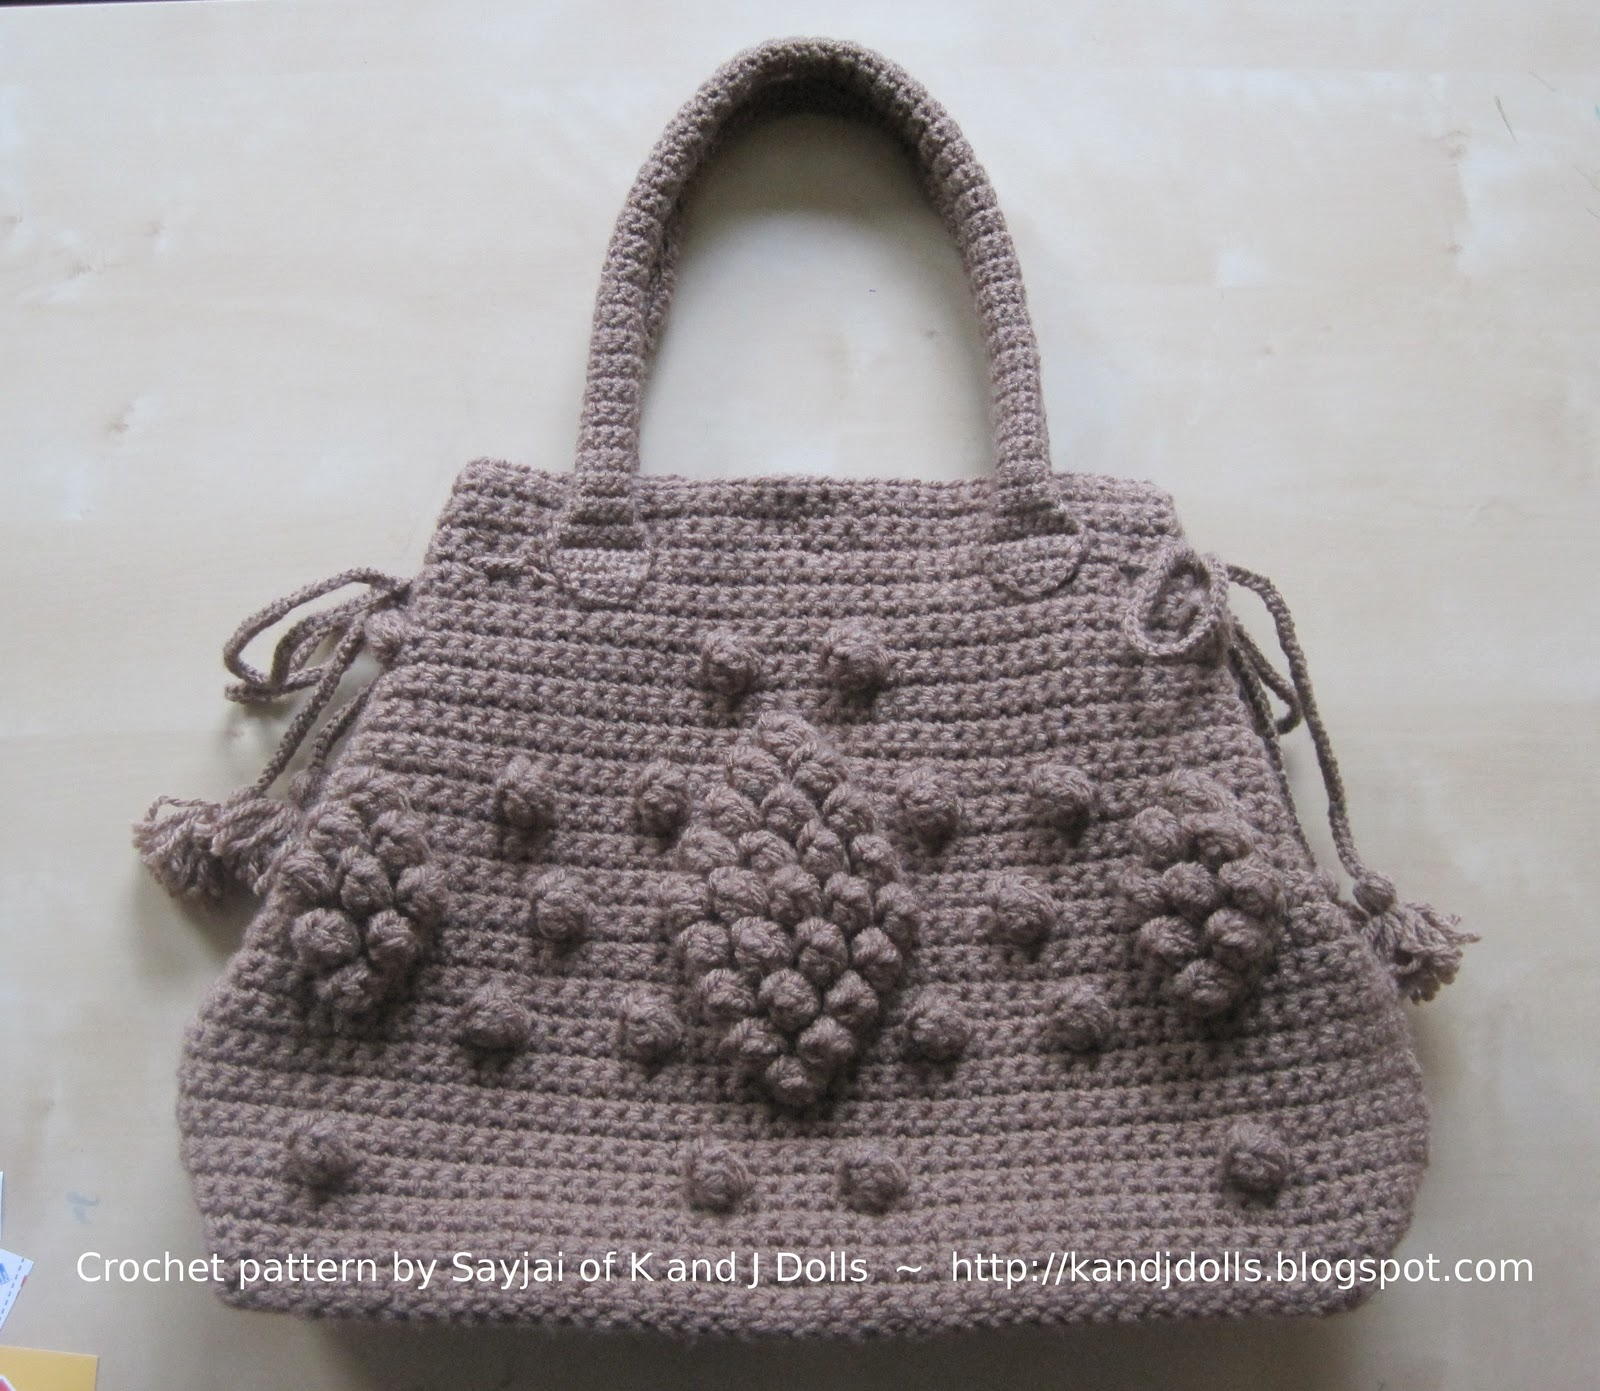 Free Crochet Patterns For Bags : 2000 Free Amigurumi Patterns: Free Bag crochet pattern